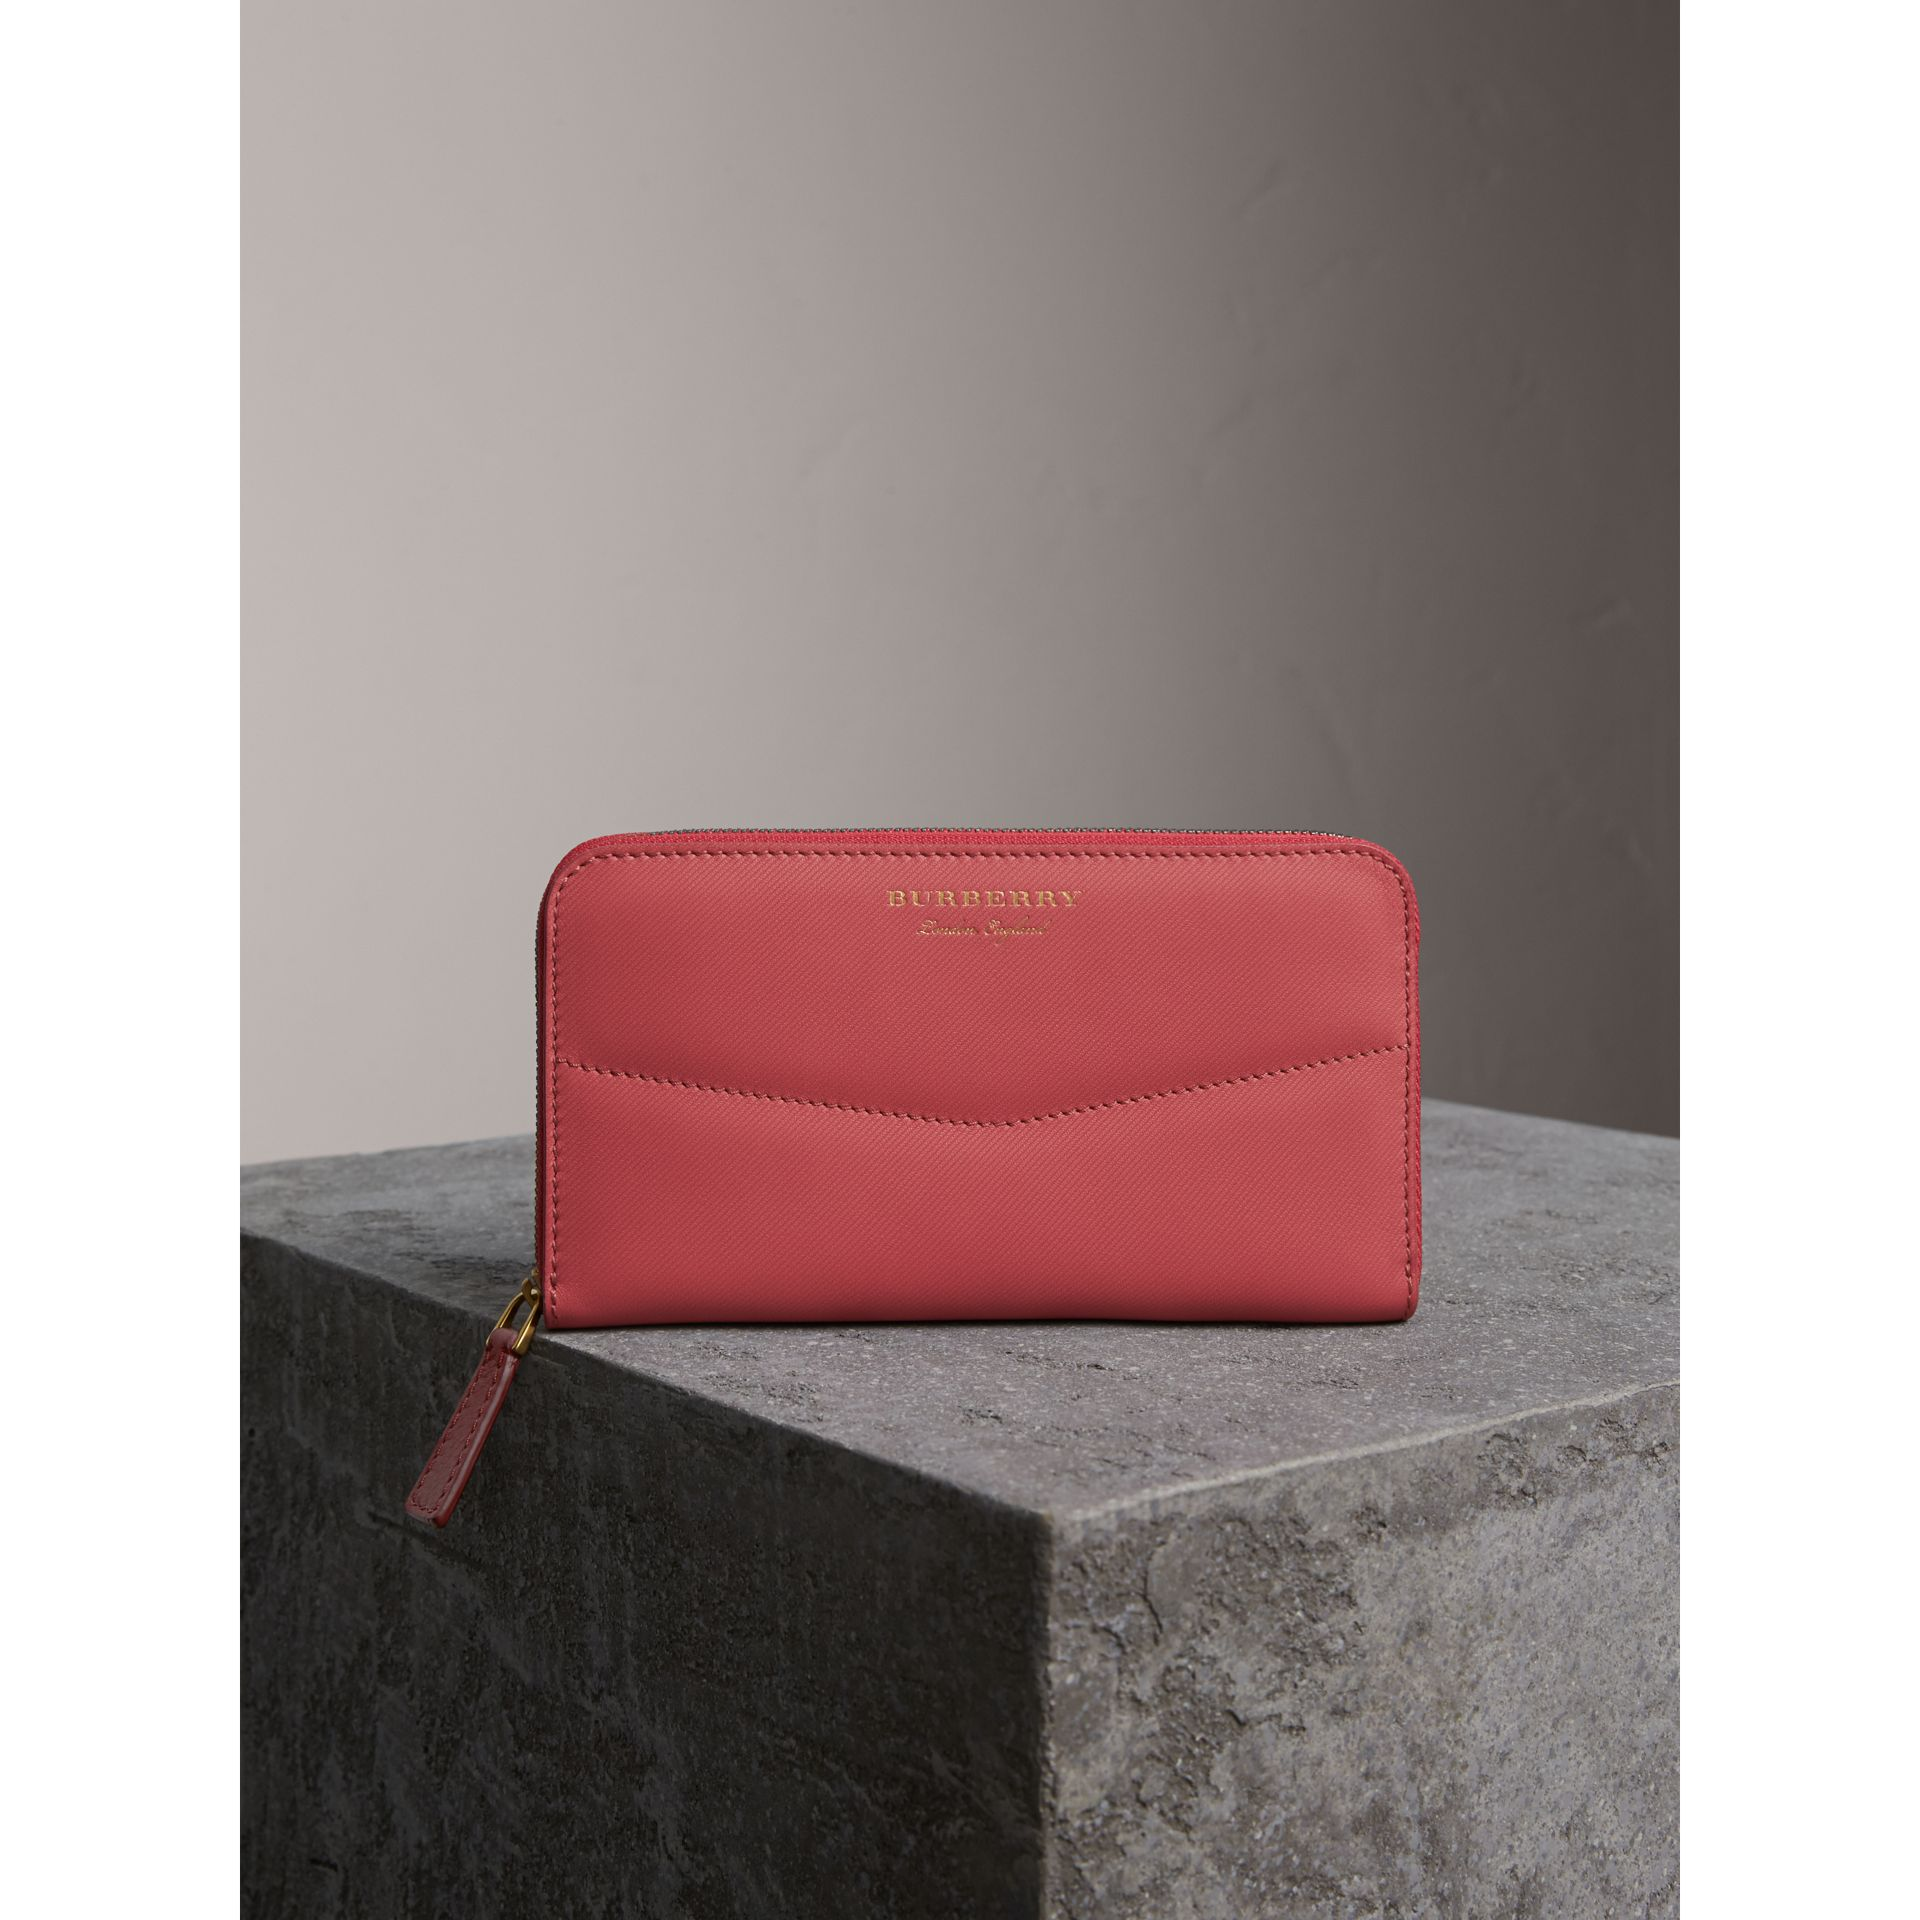 Two-tone Trench Leather Ziparound Wallet in Blossom Pink - Women | Burberry - gallery image 5